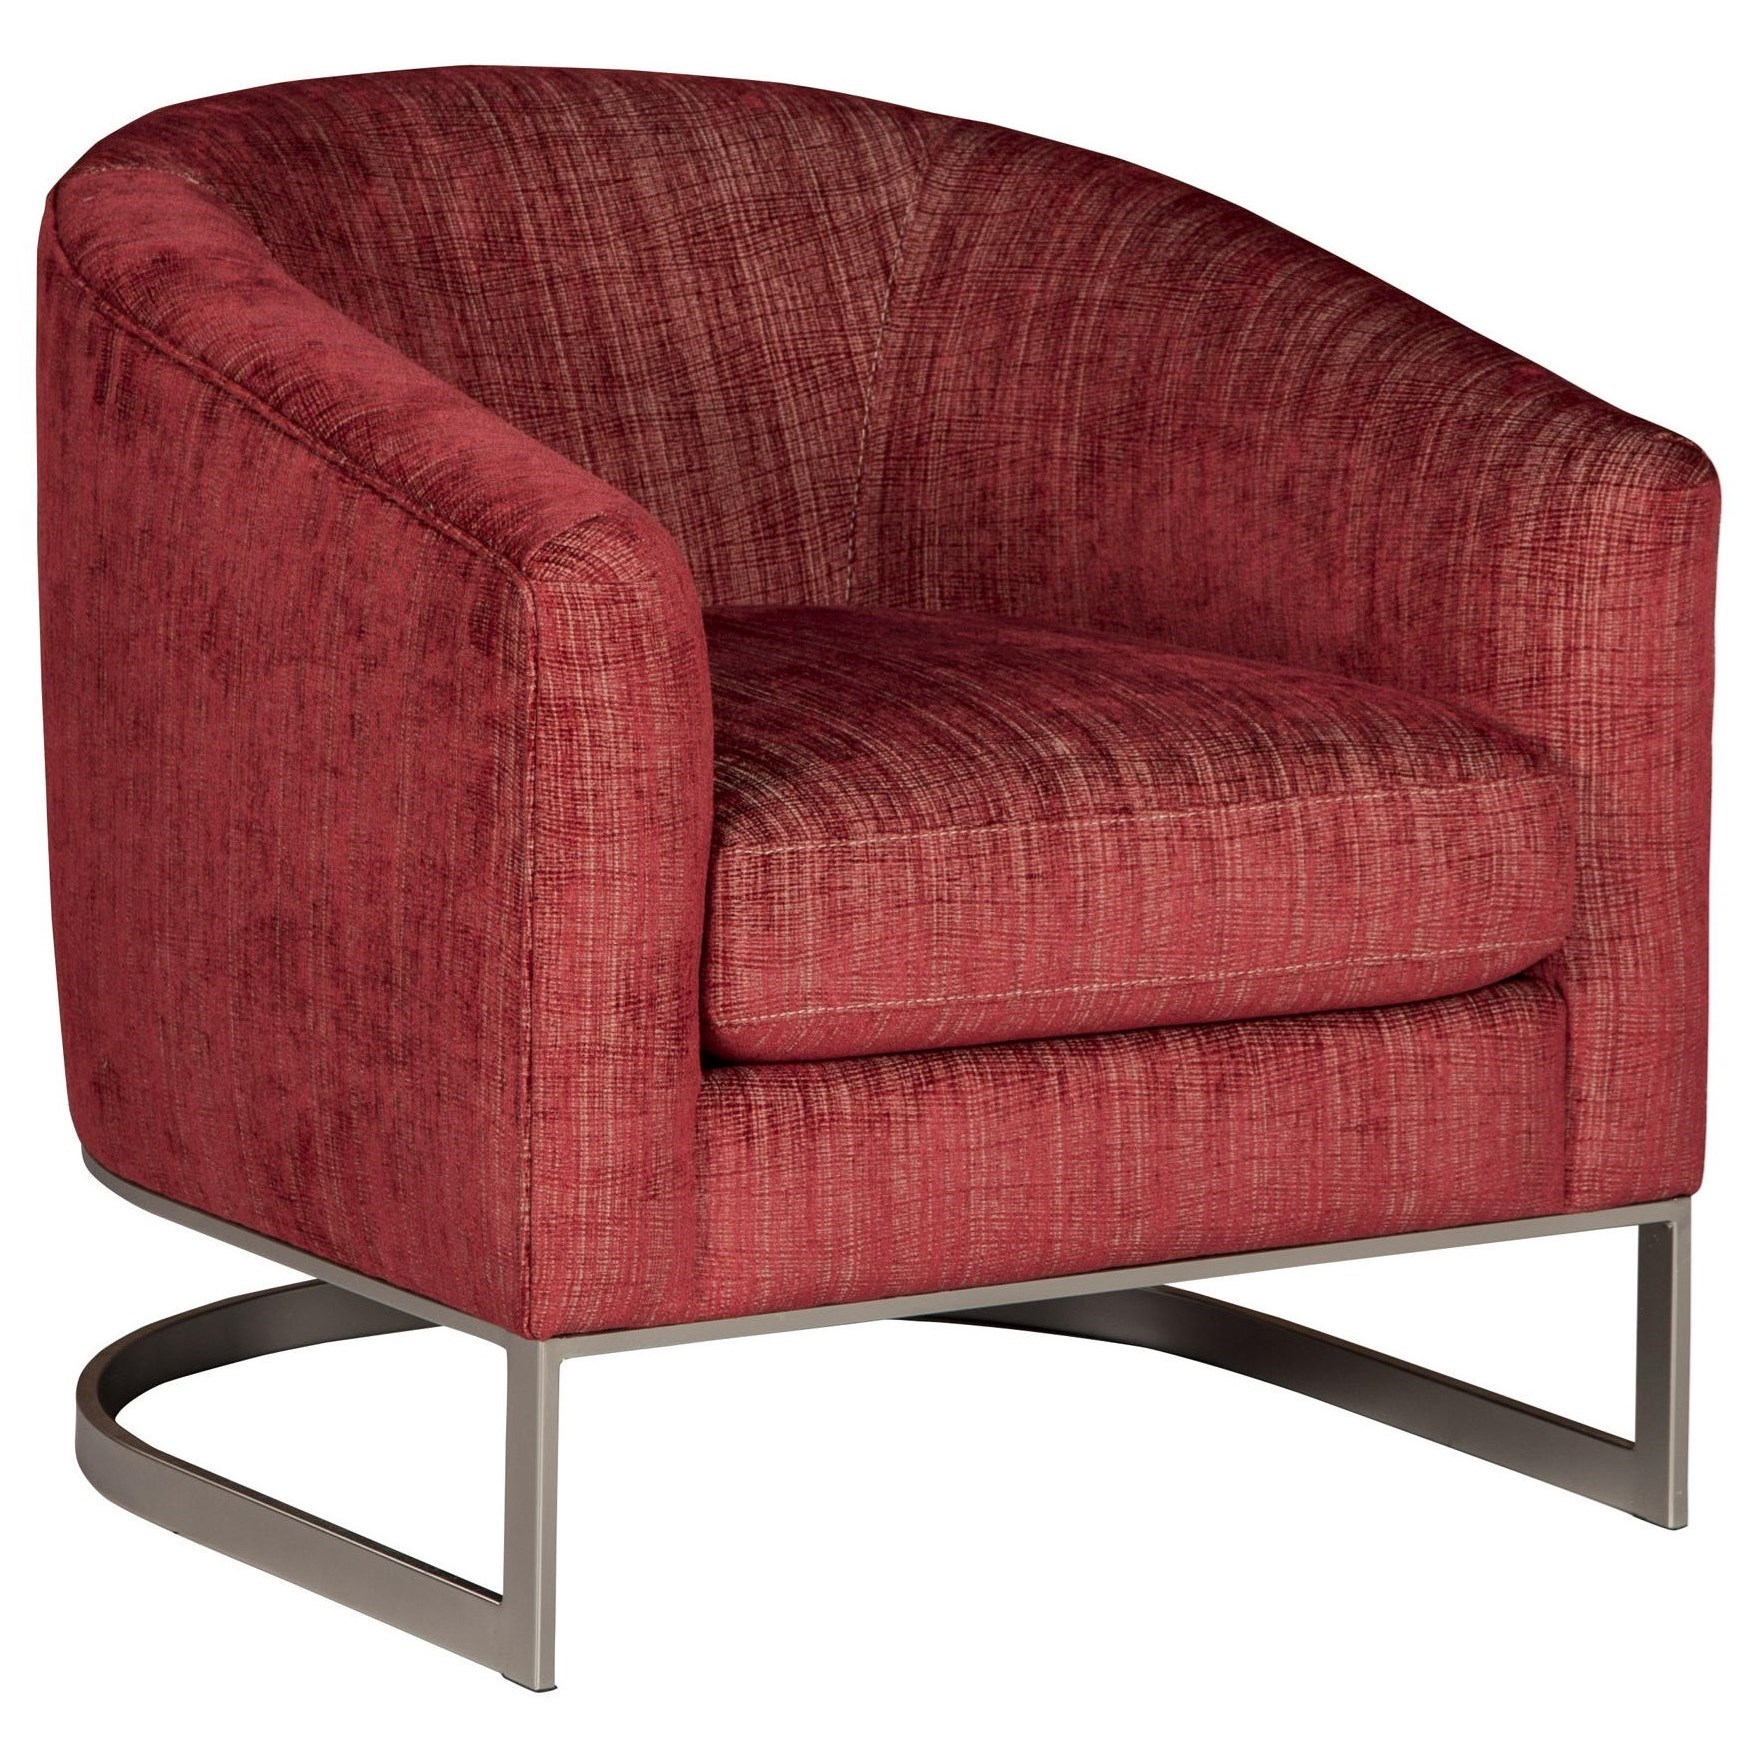 Beau Ronni Contemporary Accent Chair With Sloped Arms By Jonathan Louis